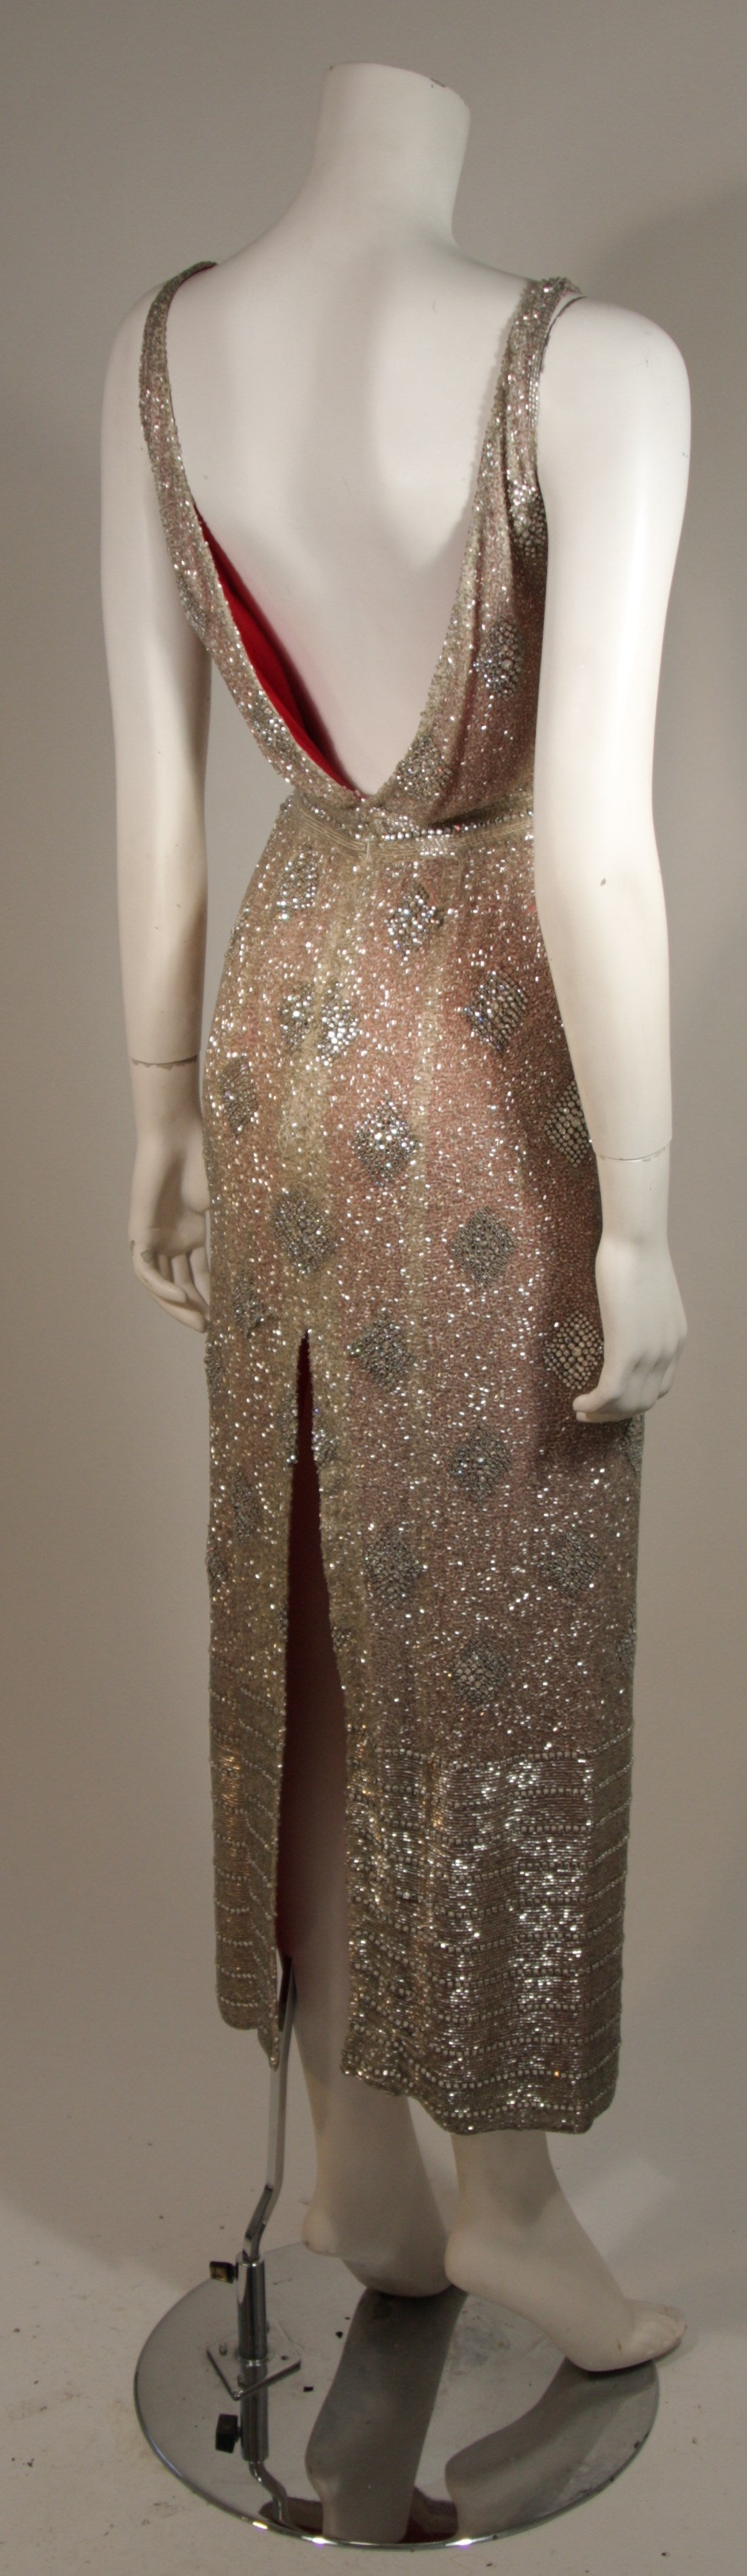 Silver Hand Beaded Rhinestone Gown w Raspberry Silk Lining & Back Slit Size S For Sale 1